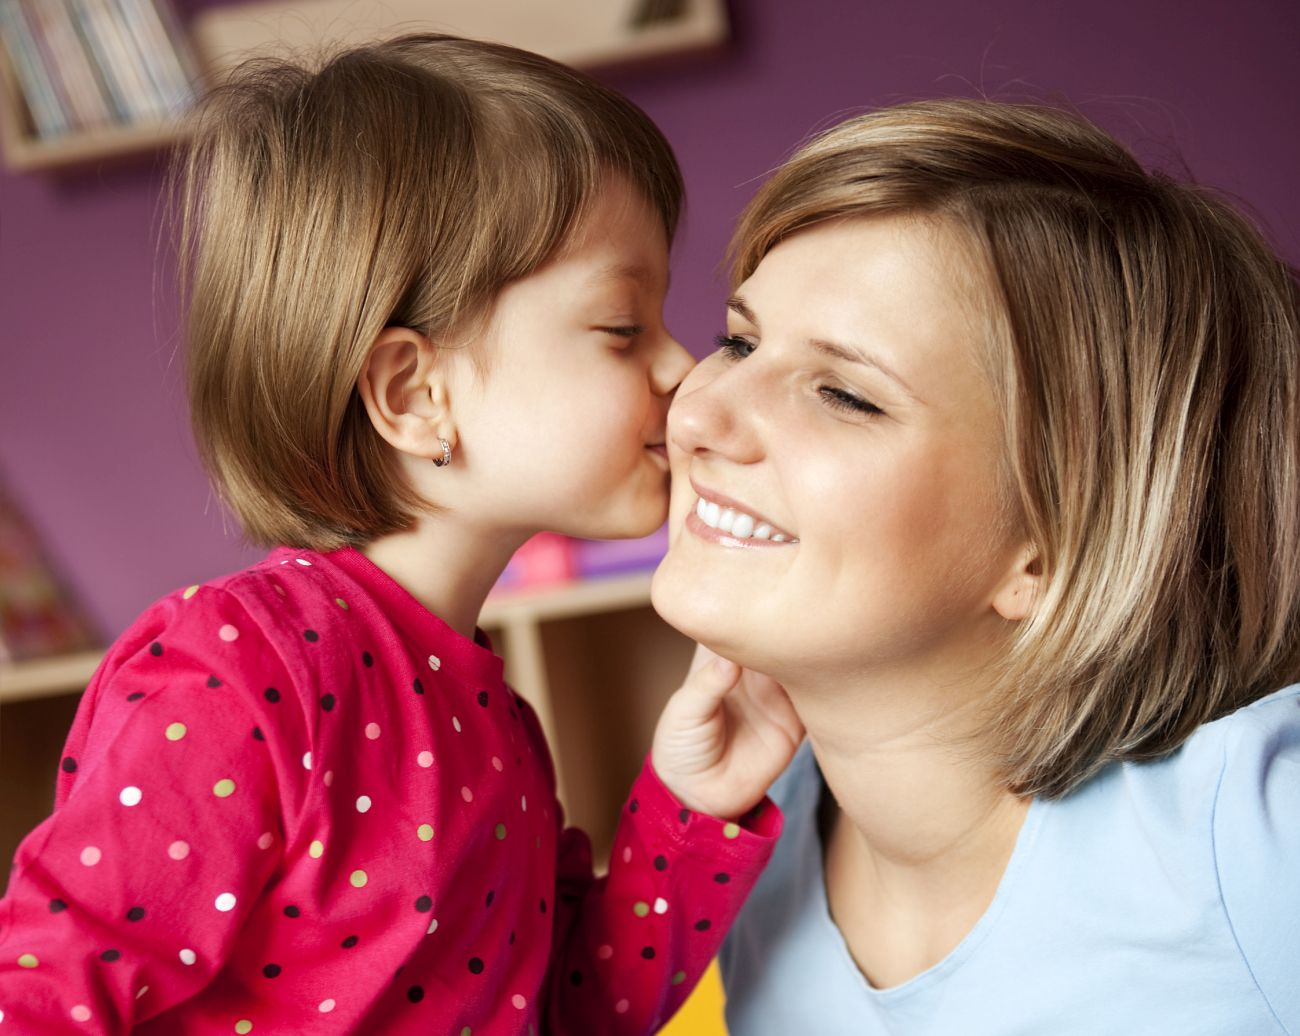 If you love children, the Au-Pair program is just right for you!